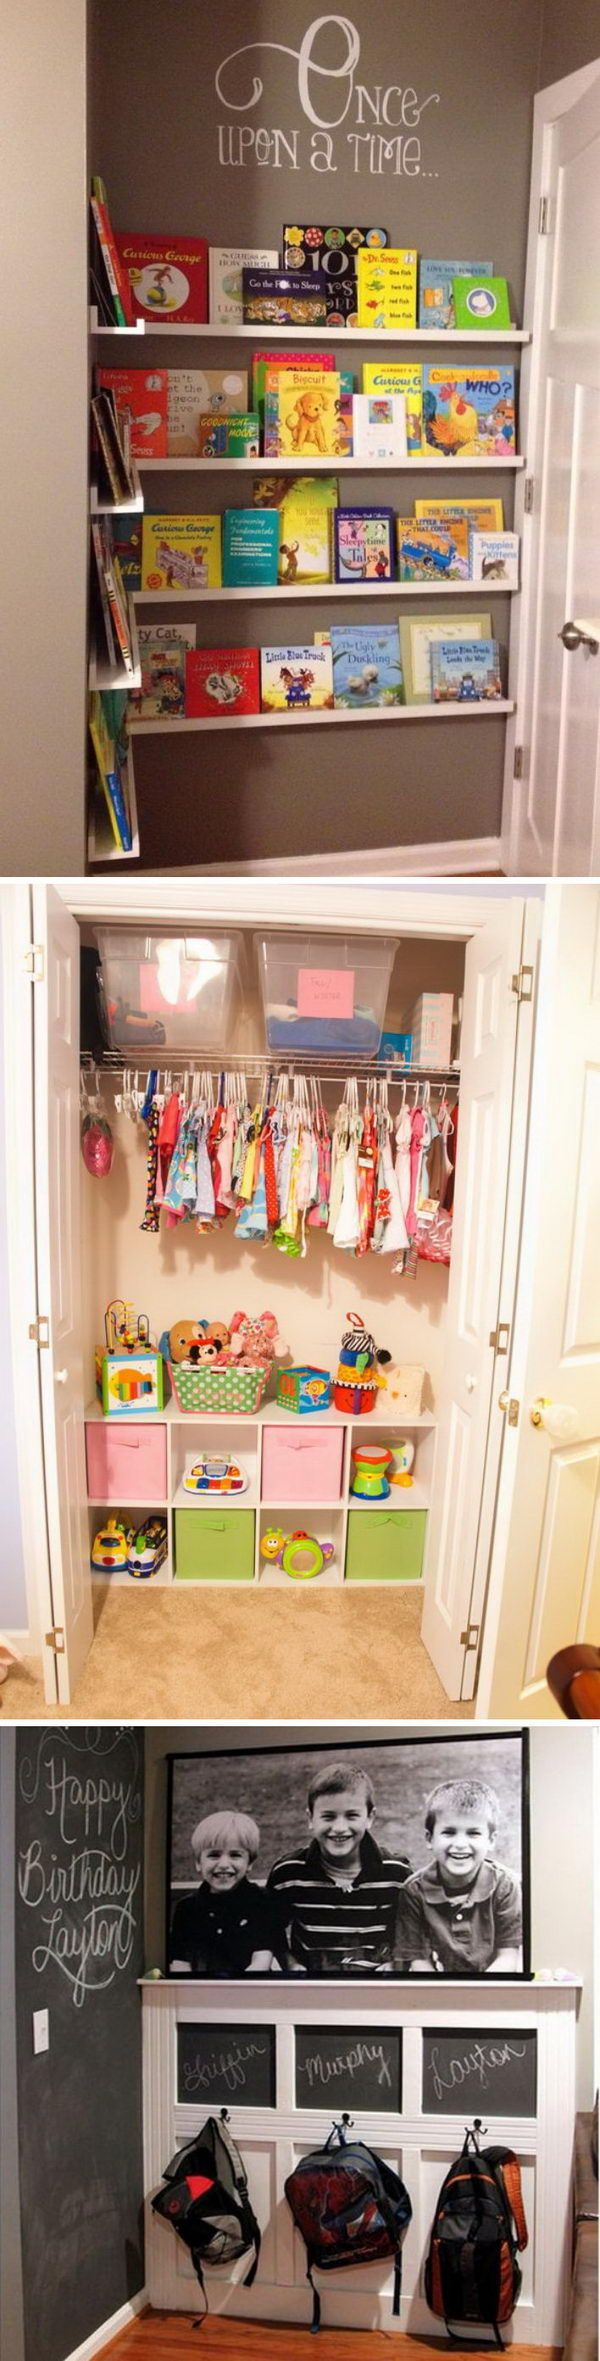 30 Creative Storage Ideas To Organize Kids Room 2018 Baby Liam